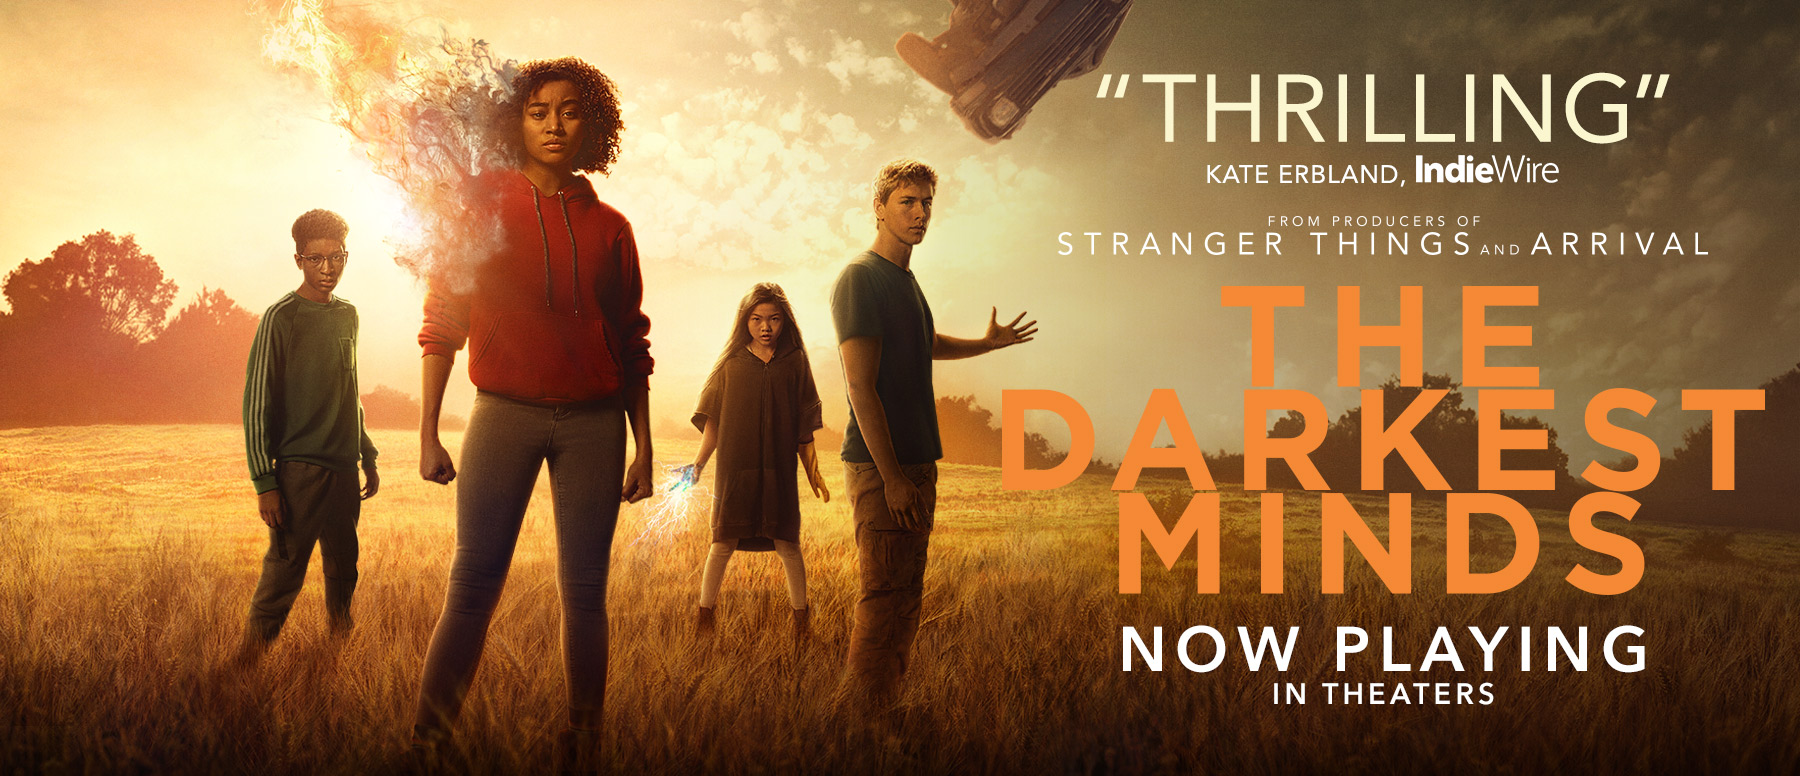 فيلم THE DARKEST MINDS